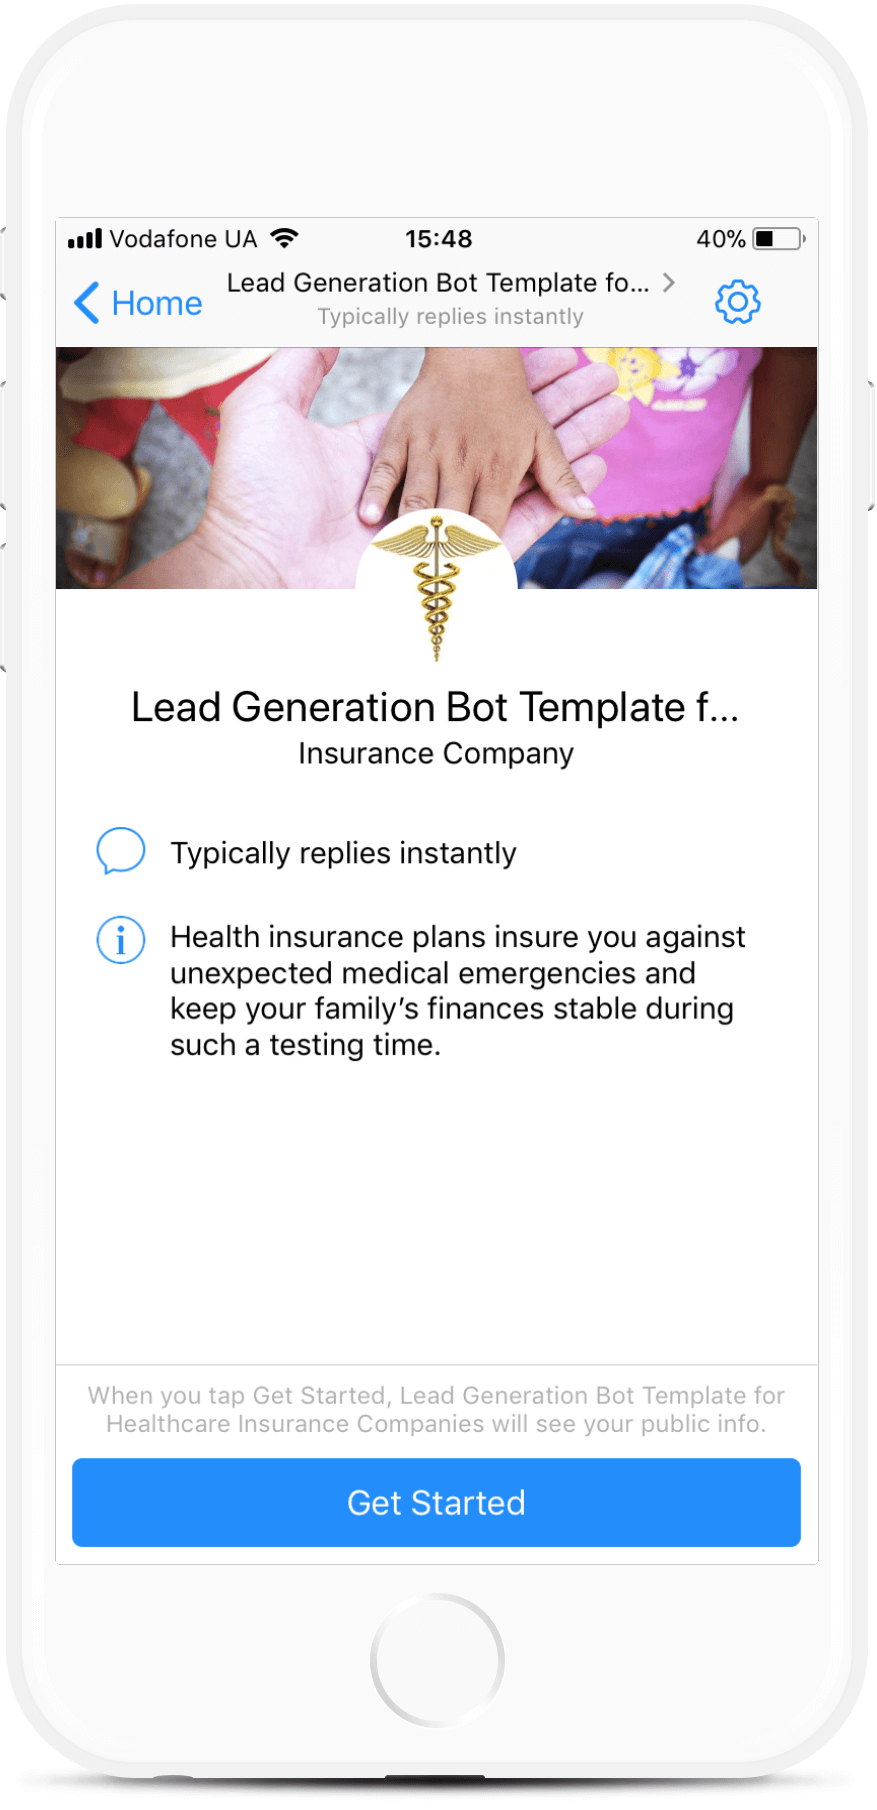 Lead Generation Bot Template for Healthсare Insurance Companies Messenger bot screenshot